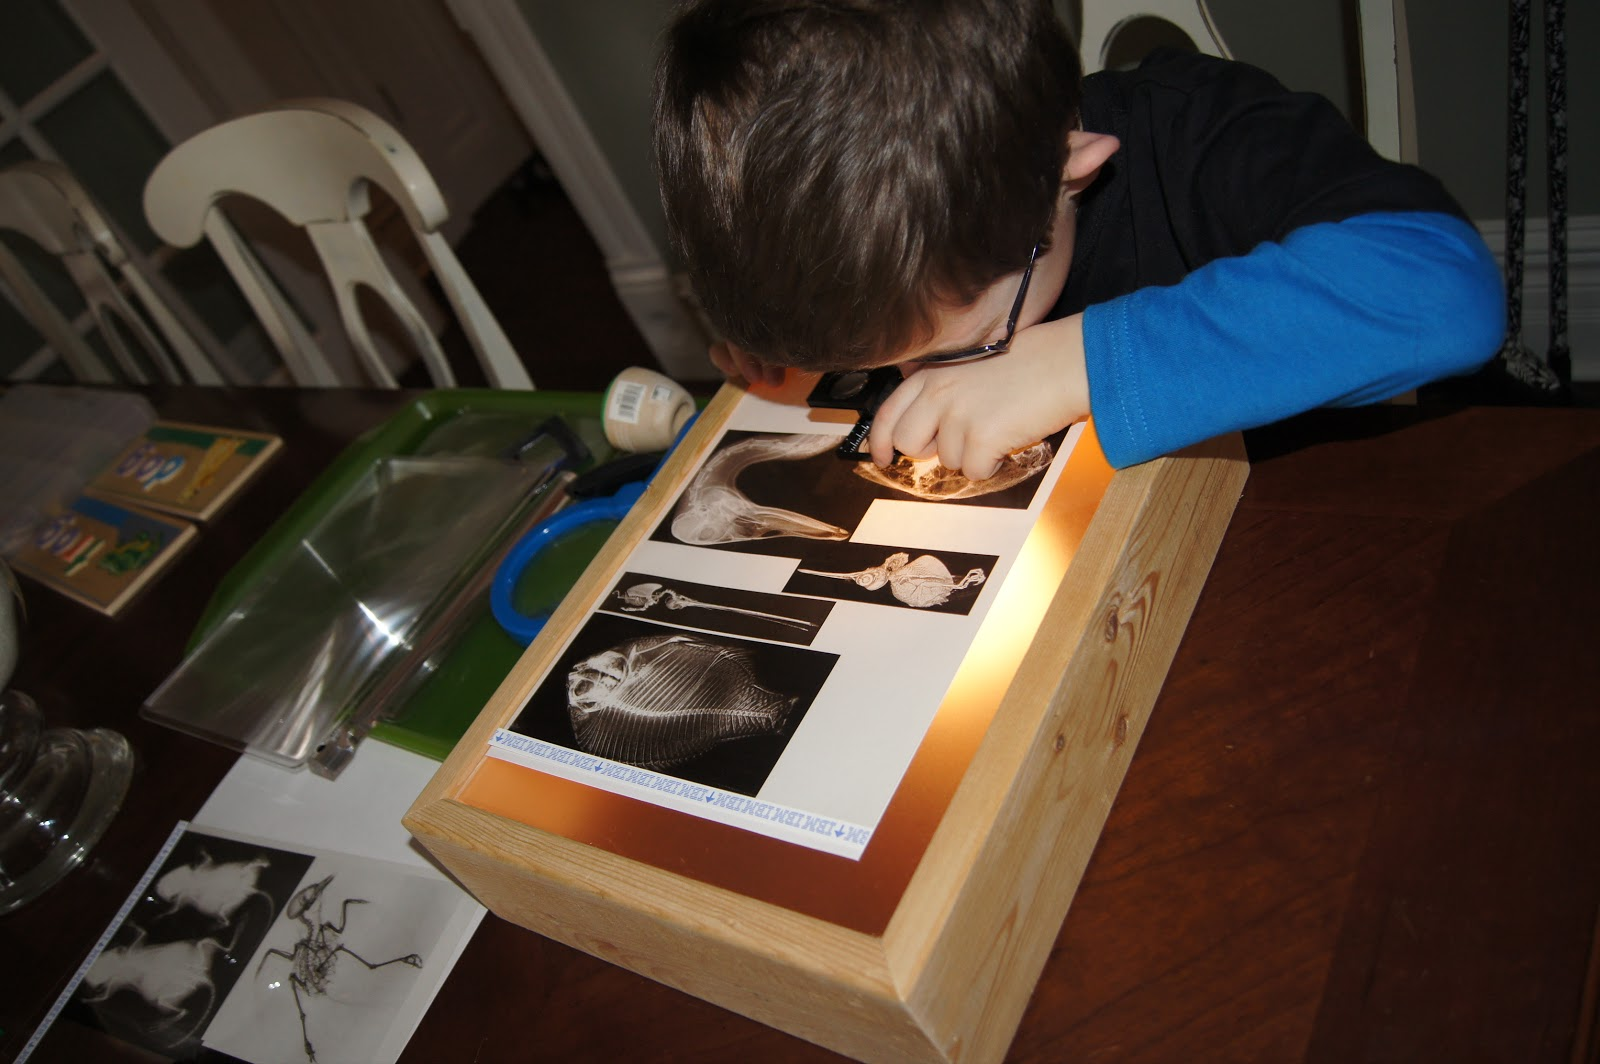 Diy Light Box Amp X Rays Science For Kids At Home Quot Making